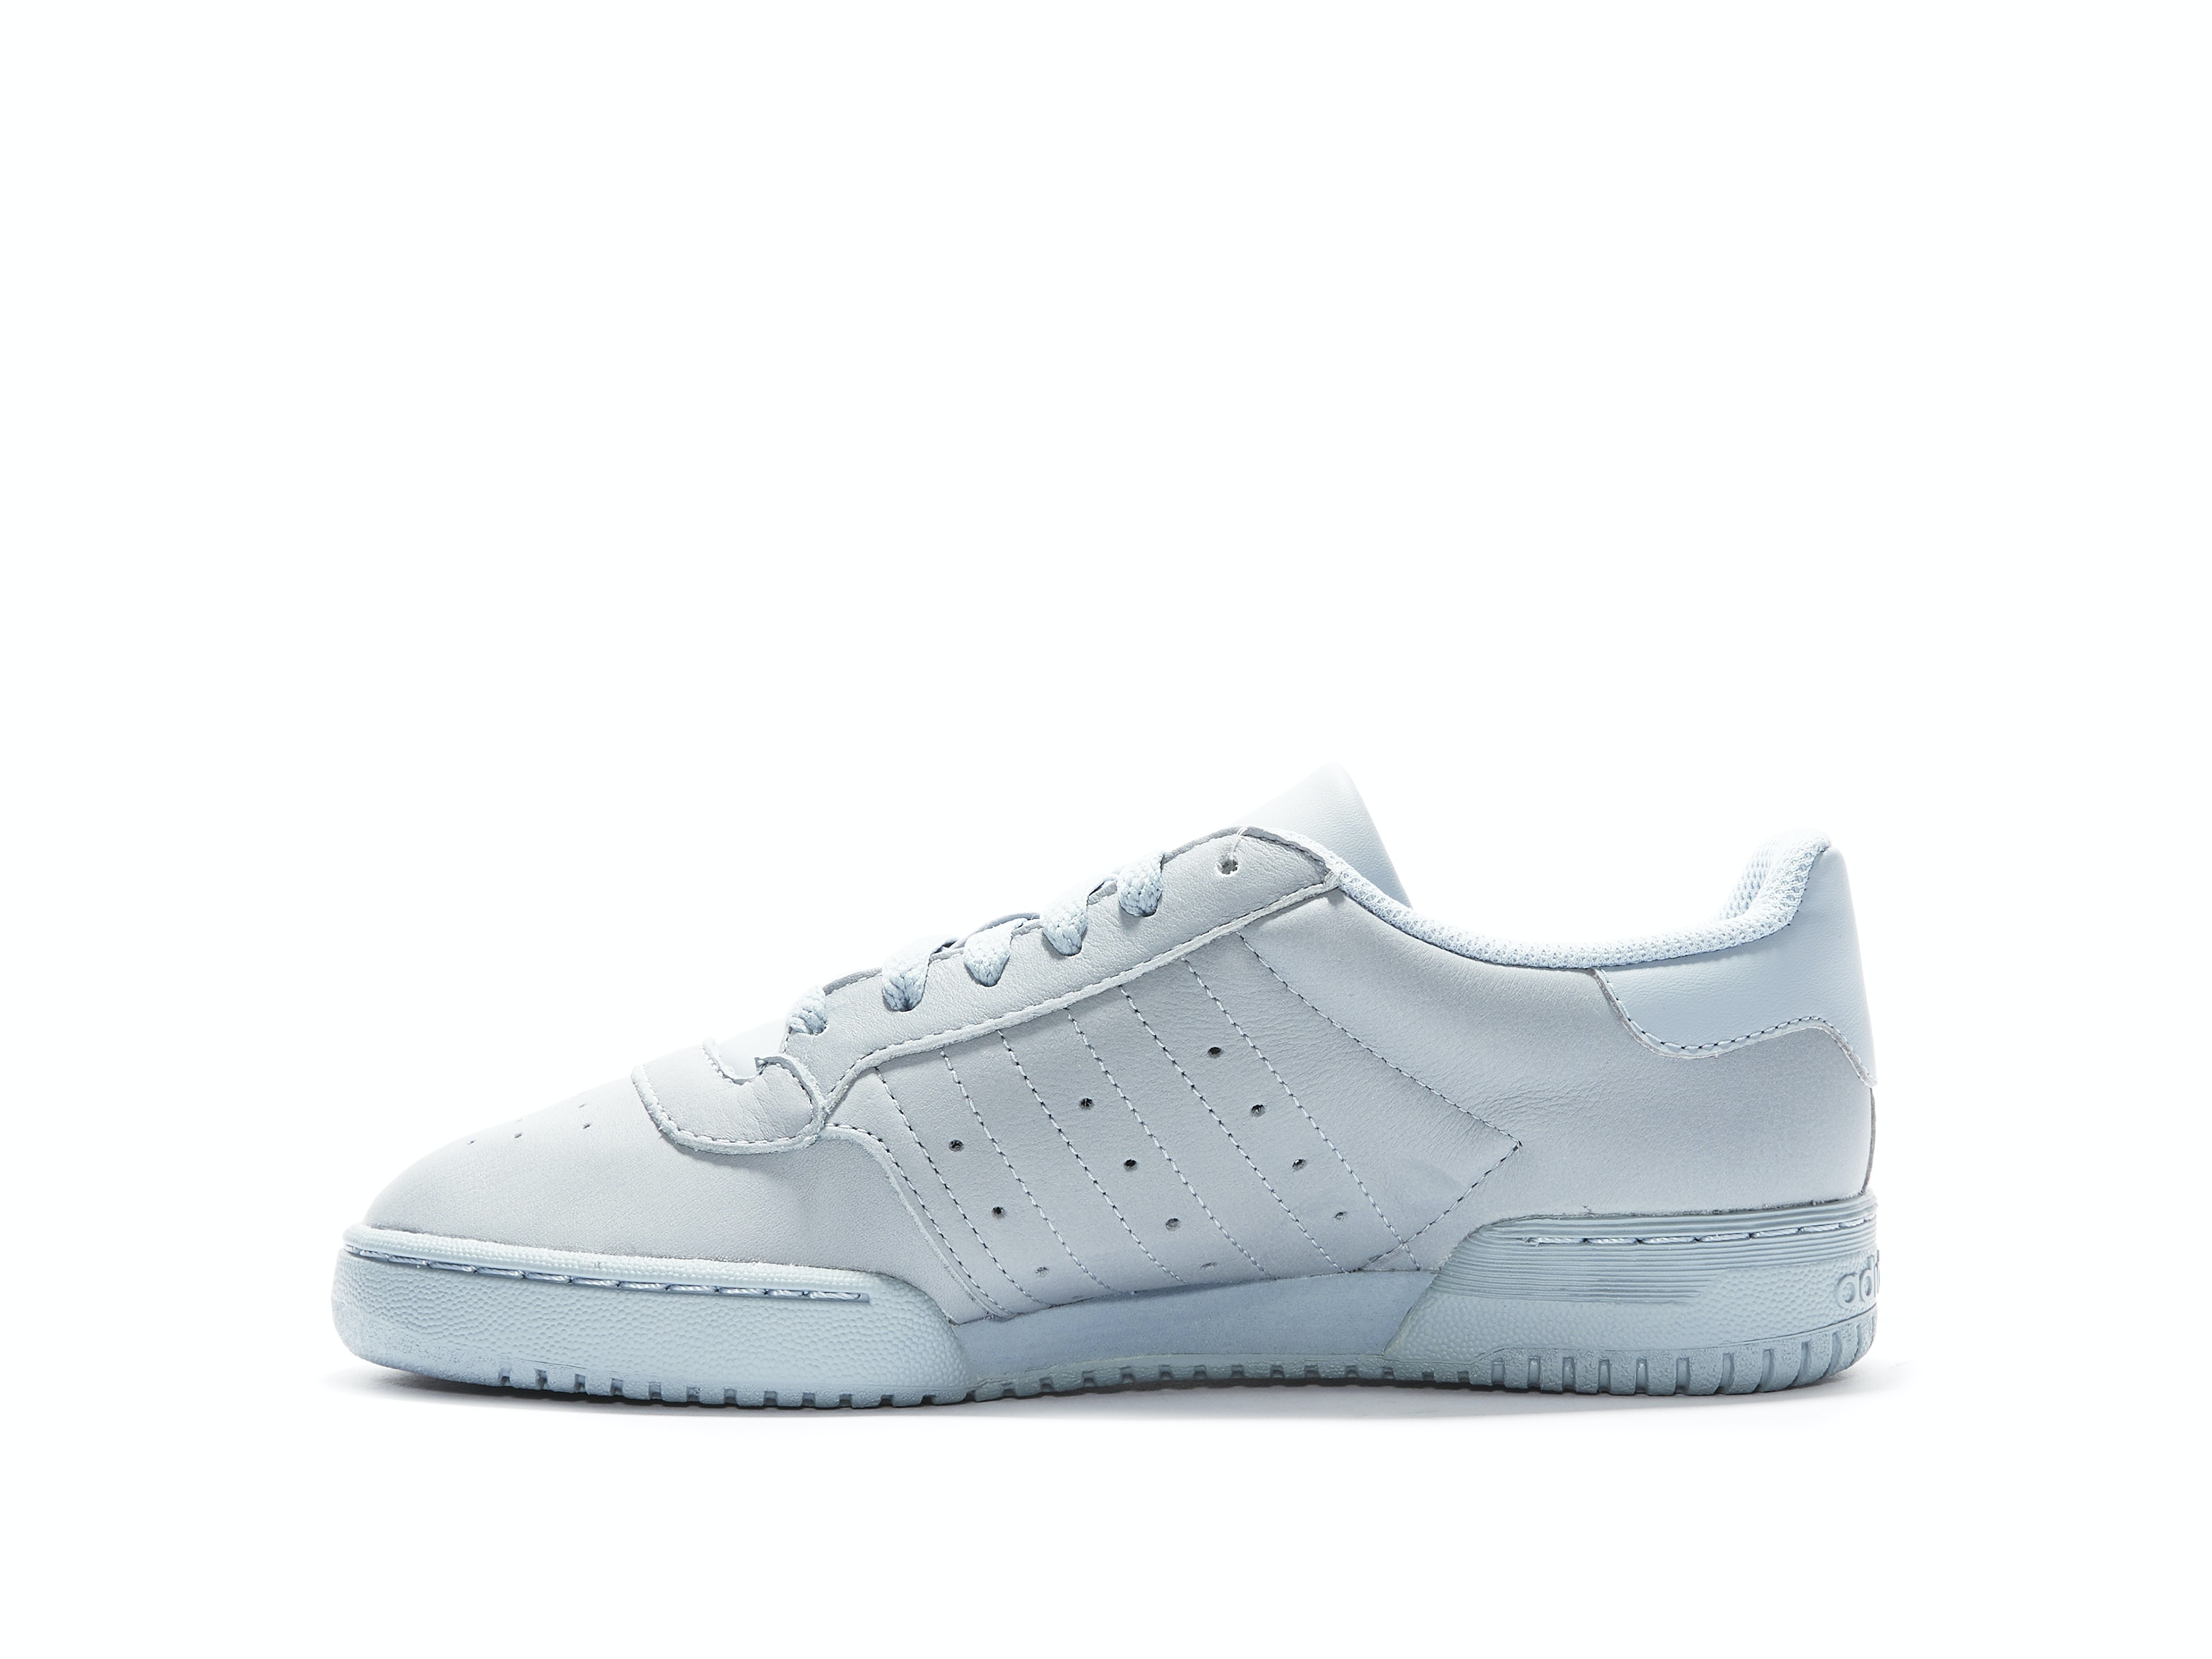 51728f71d7294 Shop Yeezy Powerphase Calabasas Grey Online